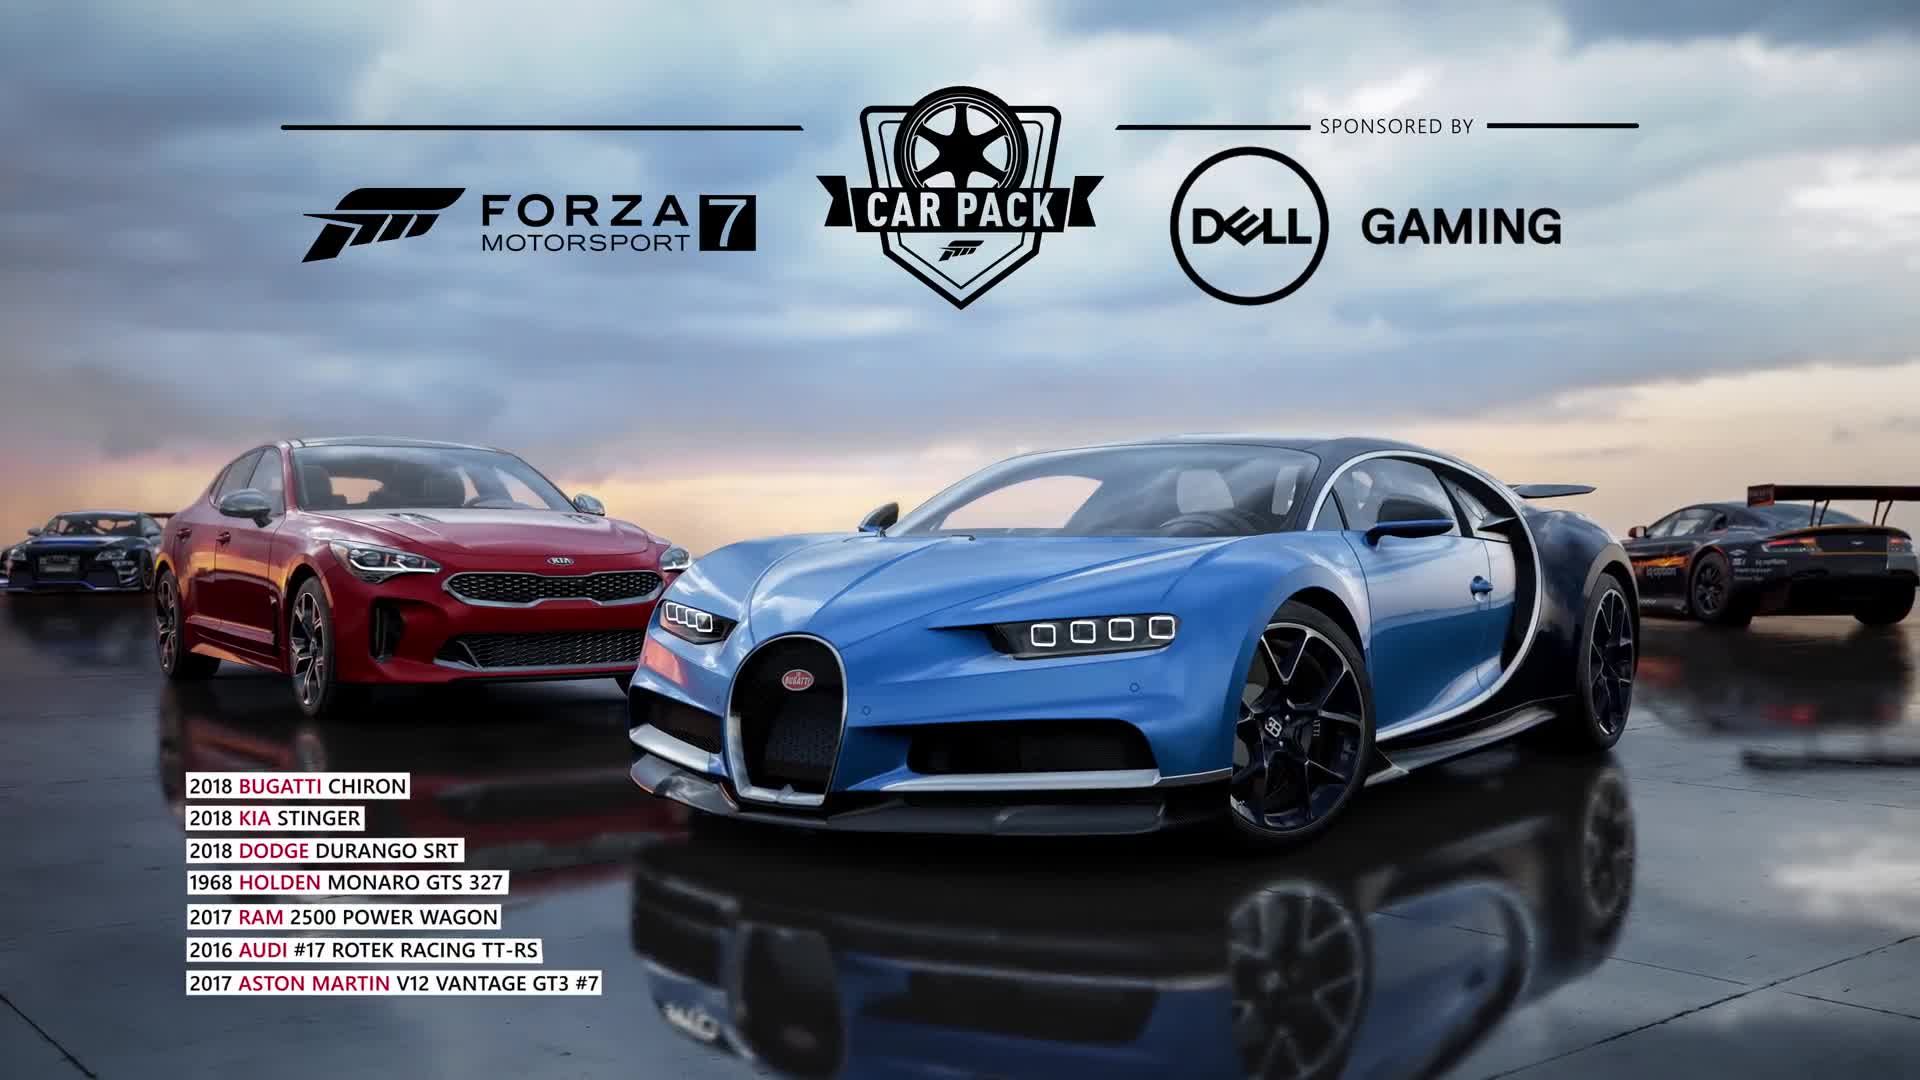 Forza Motorsport 7 - Dell Gaming Car Pack